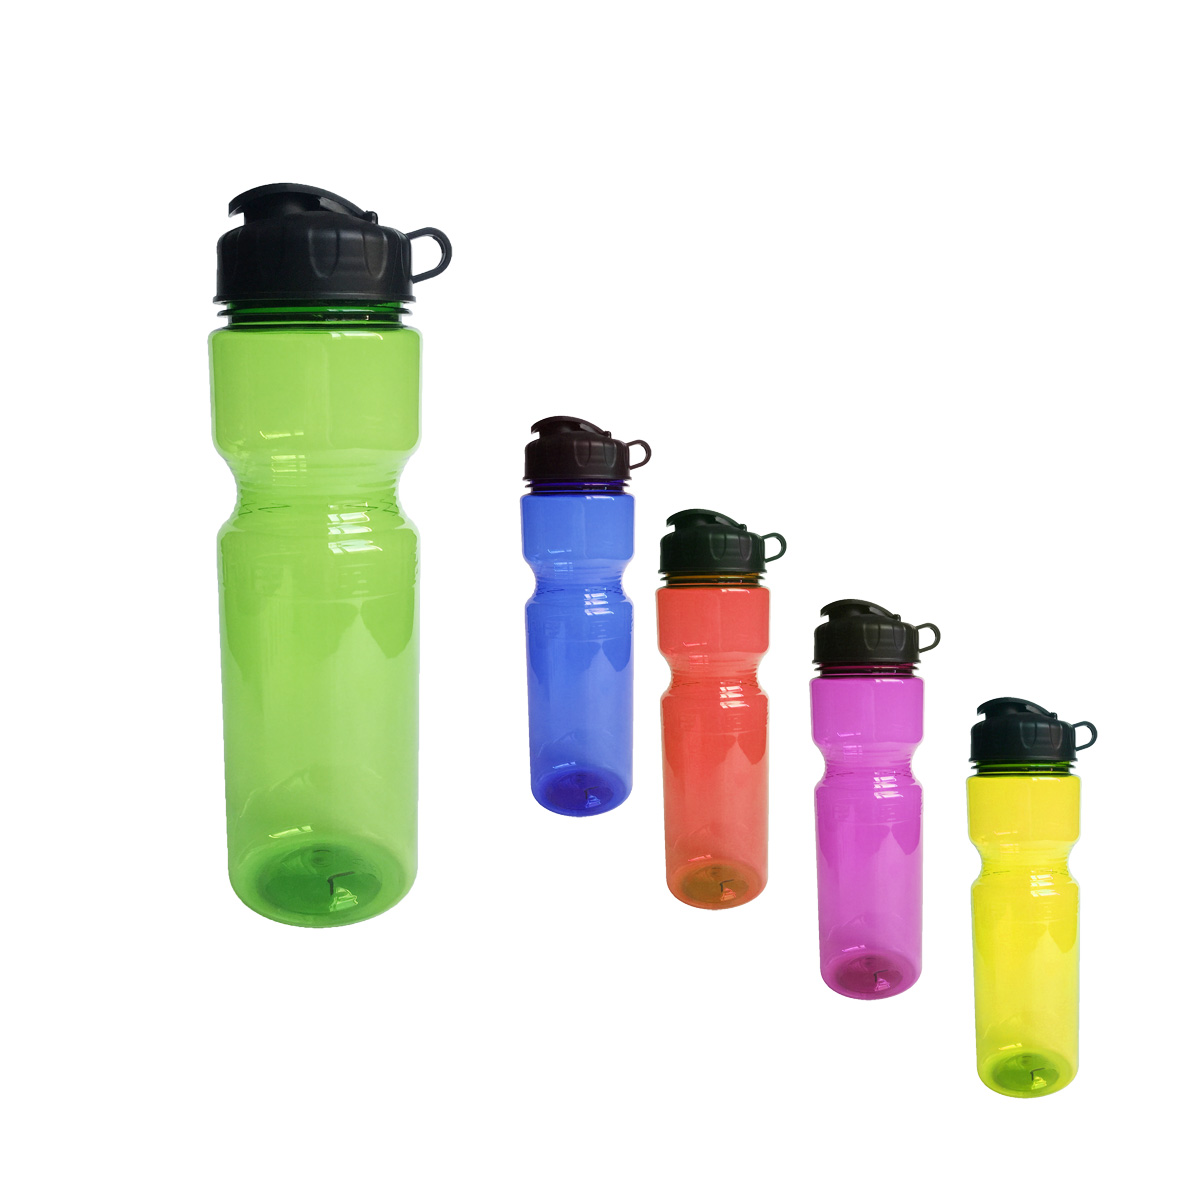 GL-AAA1299 25oz Plastic Clear Bottle with Super Sipper Lid BPA Free